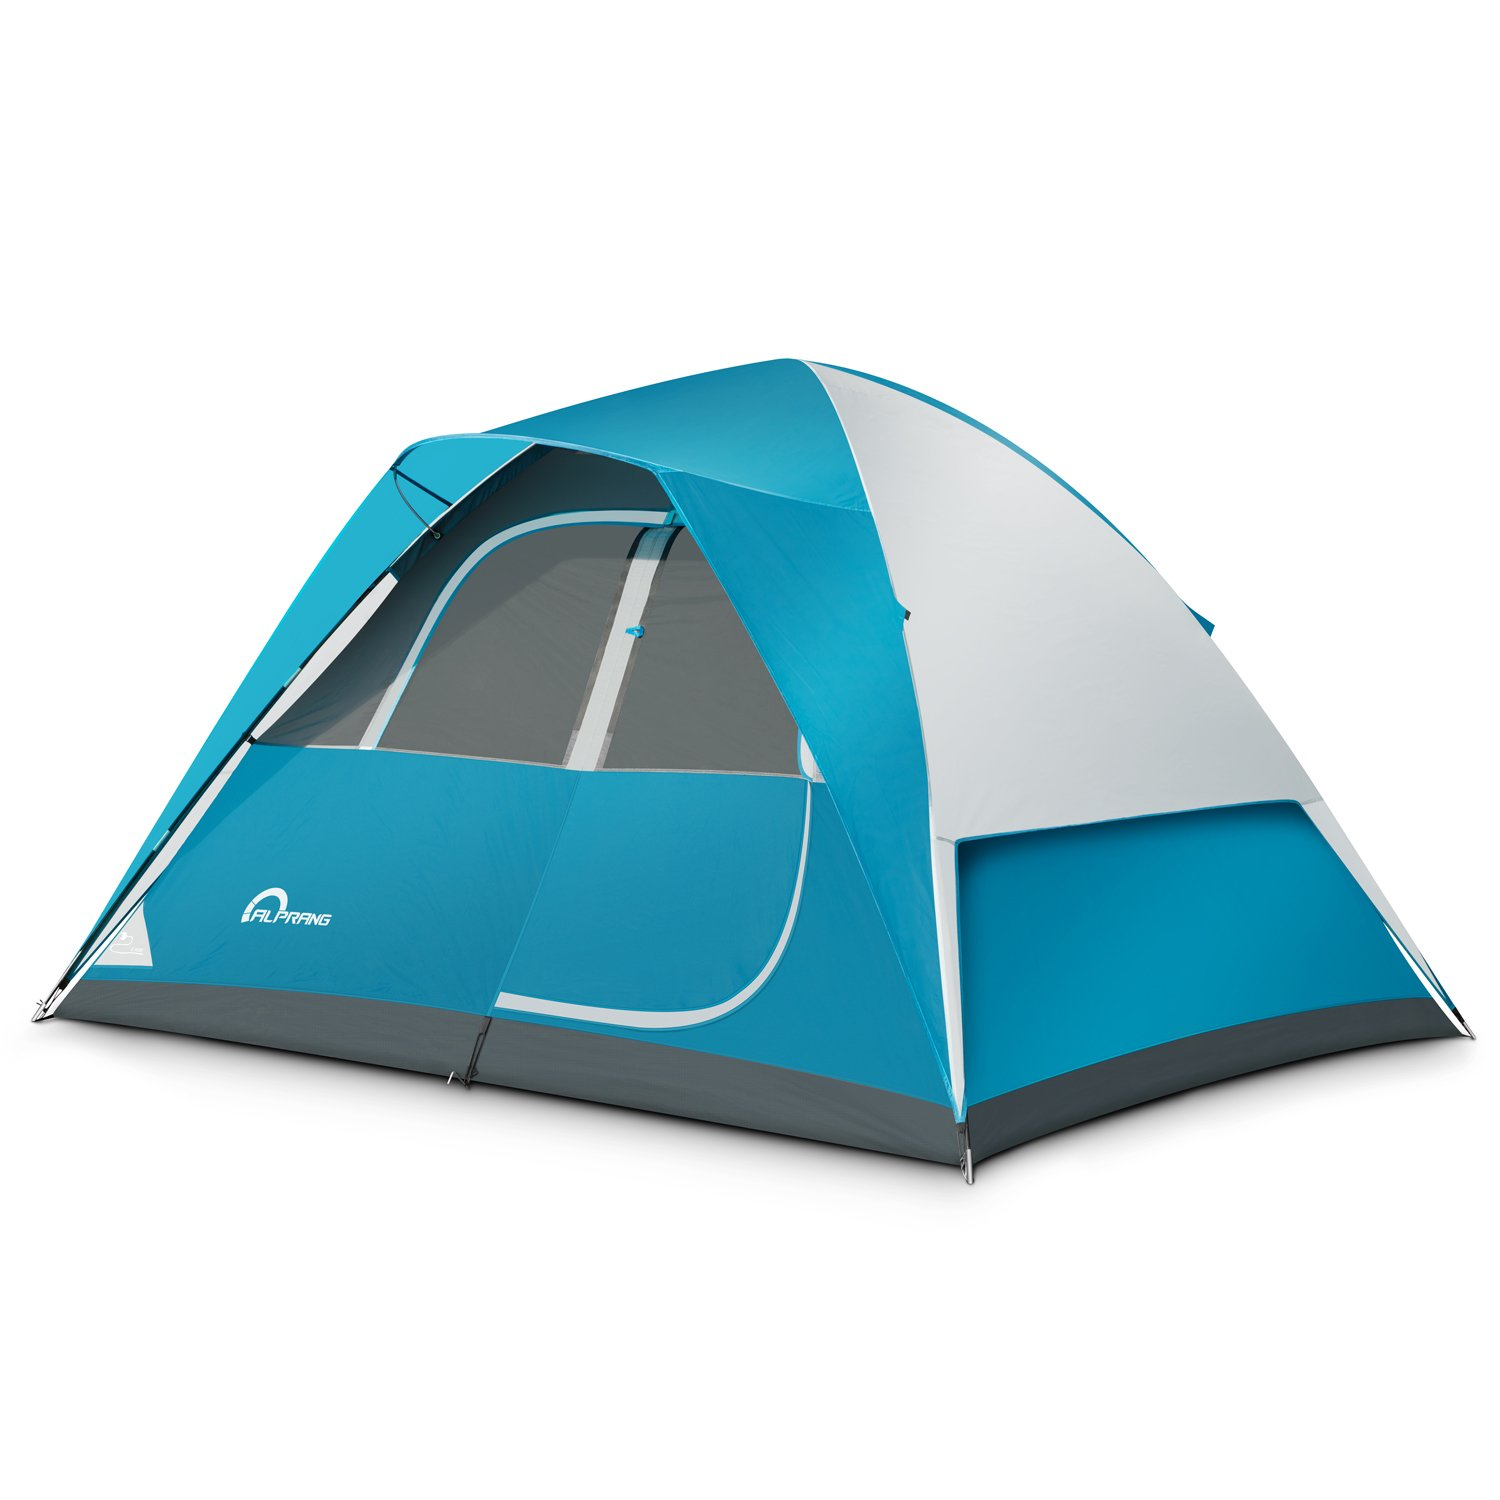 C&ing Tent - 6 ...  sc 1 st  Amazon.com & Camping Tents | Amazon.com